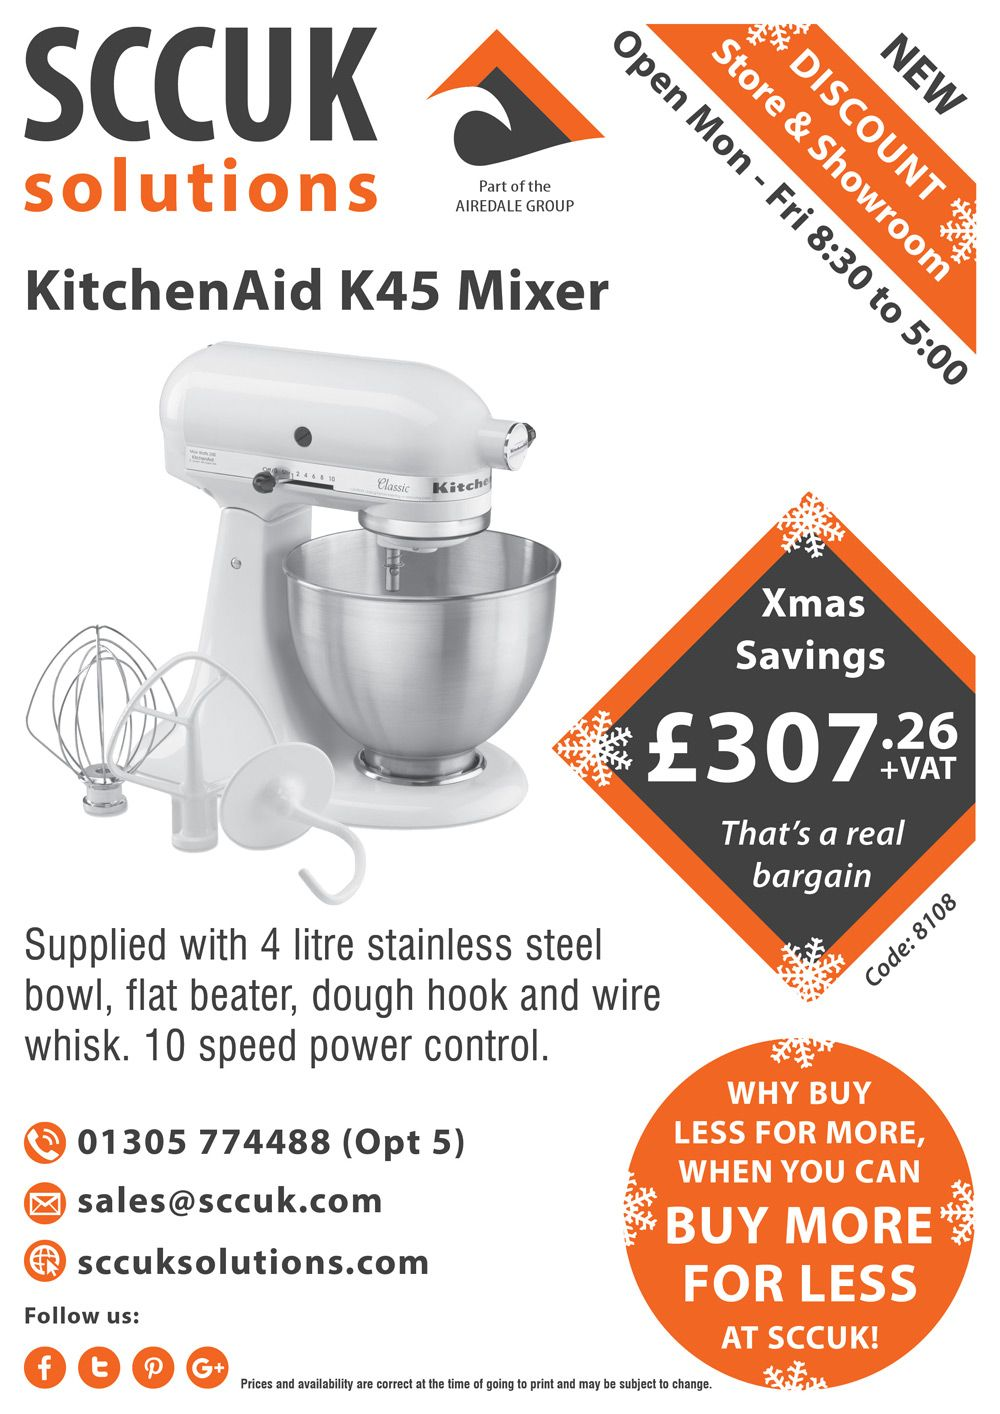 Check out this sccuk deal on the kitchenaid k45 mixer